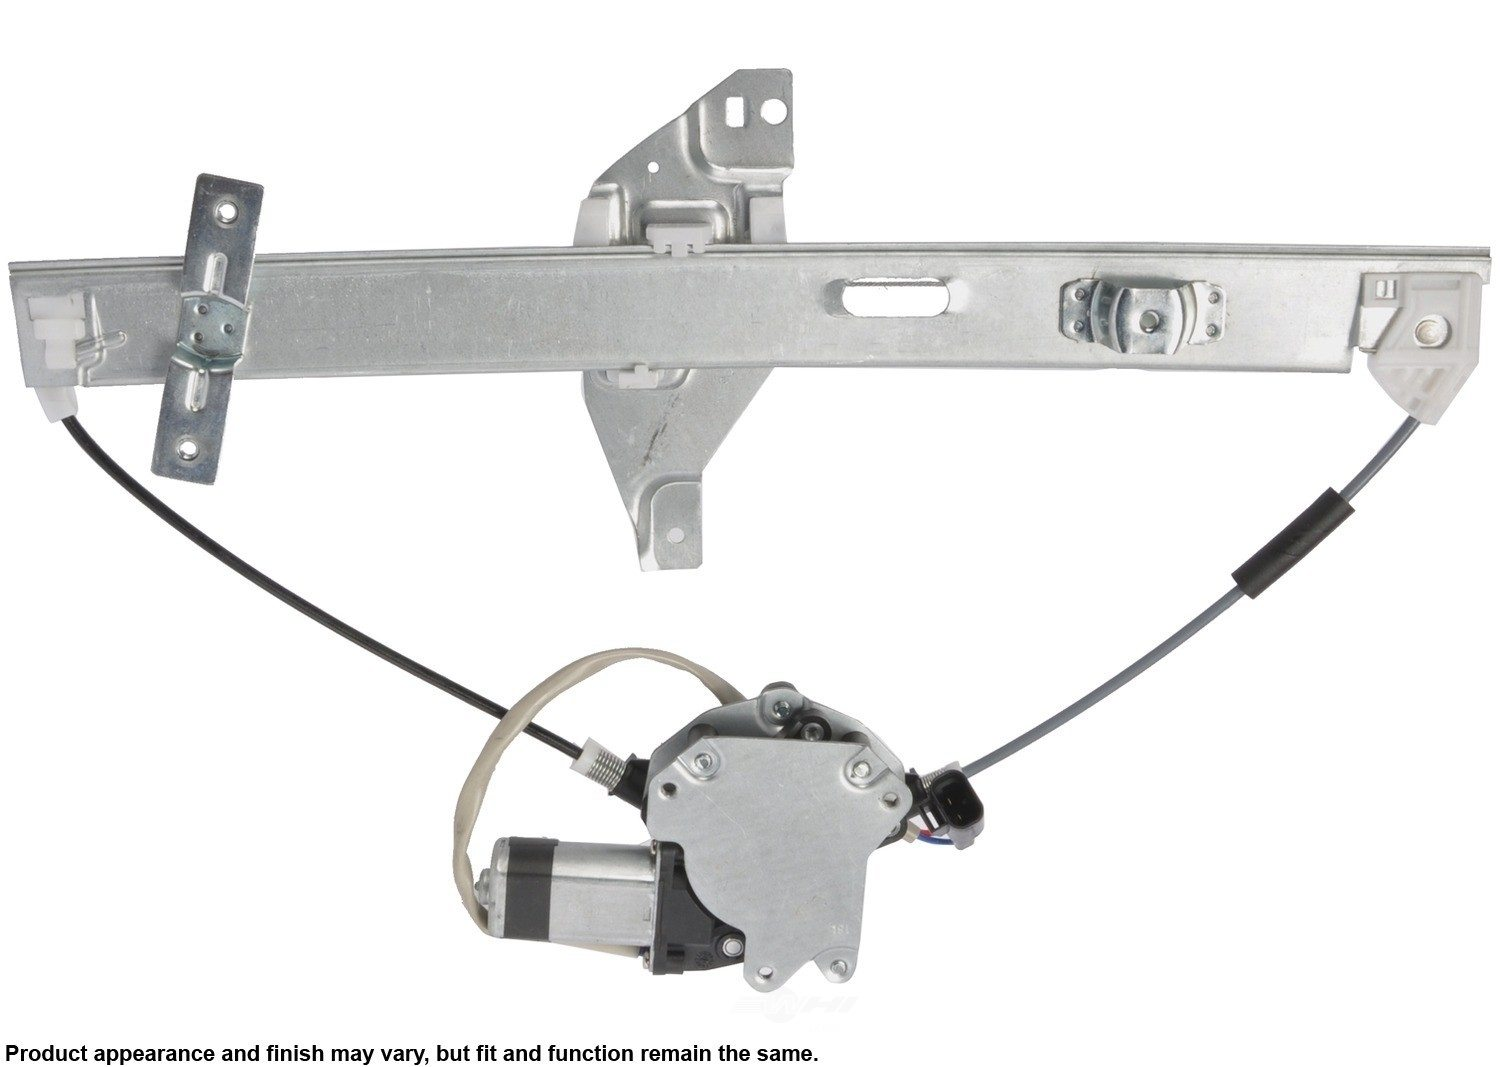 CARDONE NEW - Power Window Motor And Regulator Assembly (Front Left) - A1S 82-1030AR